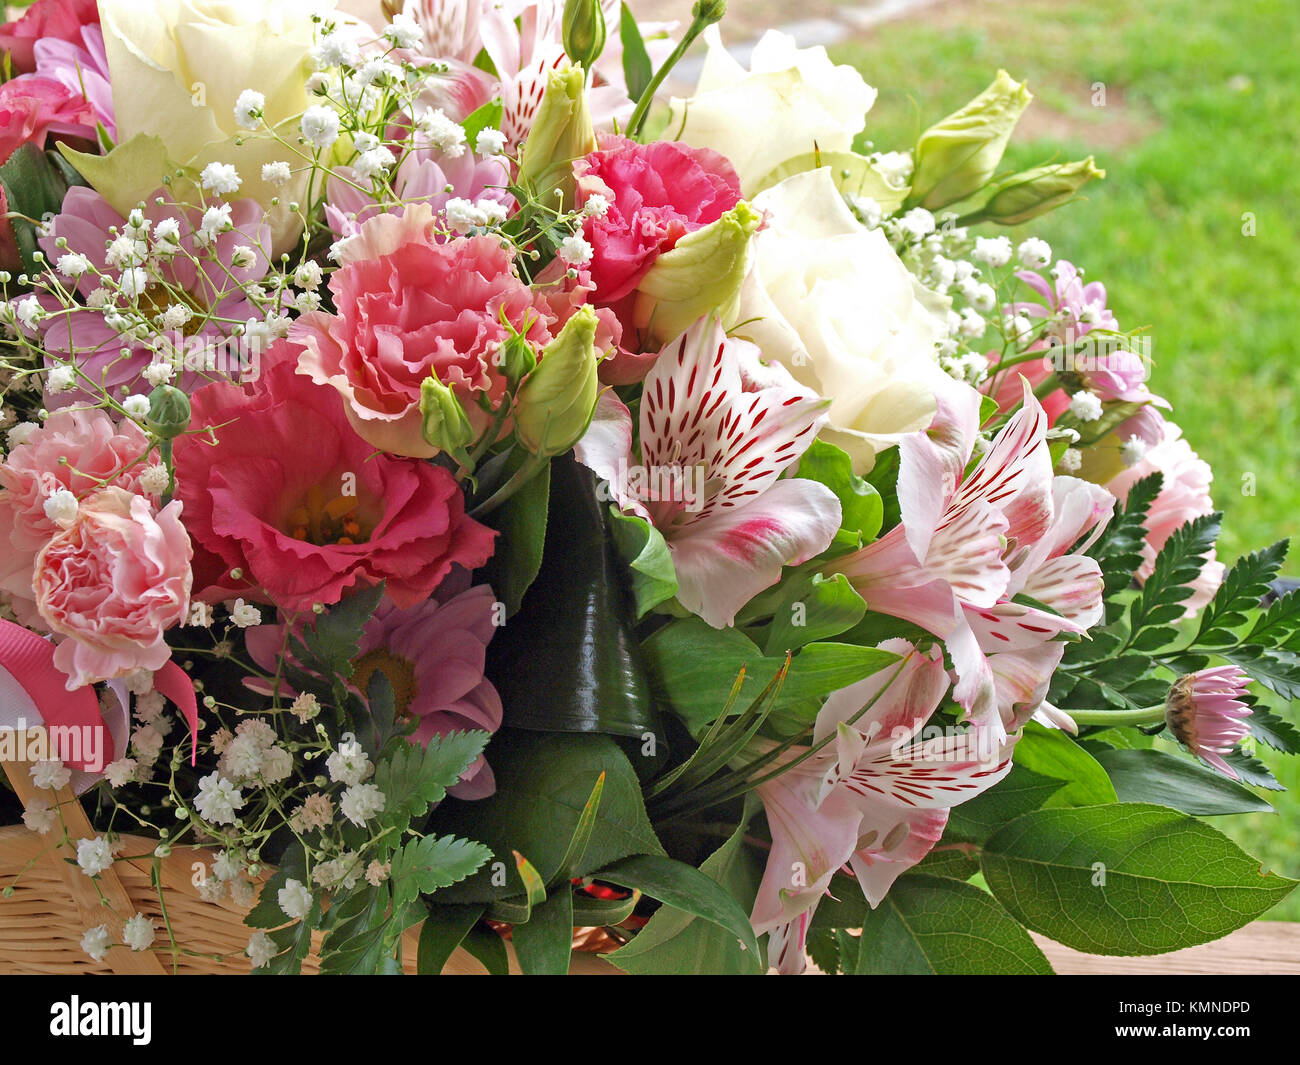 Greeting bouquet bunch of different flowers outdoor close up stock greeting bouquet bunch of different flowers outdoor close up izmirmasajfo